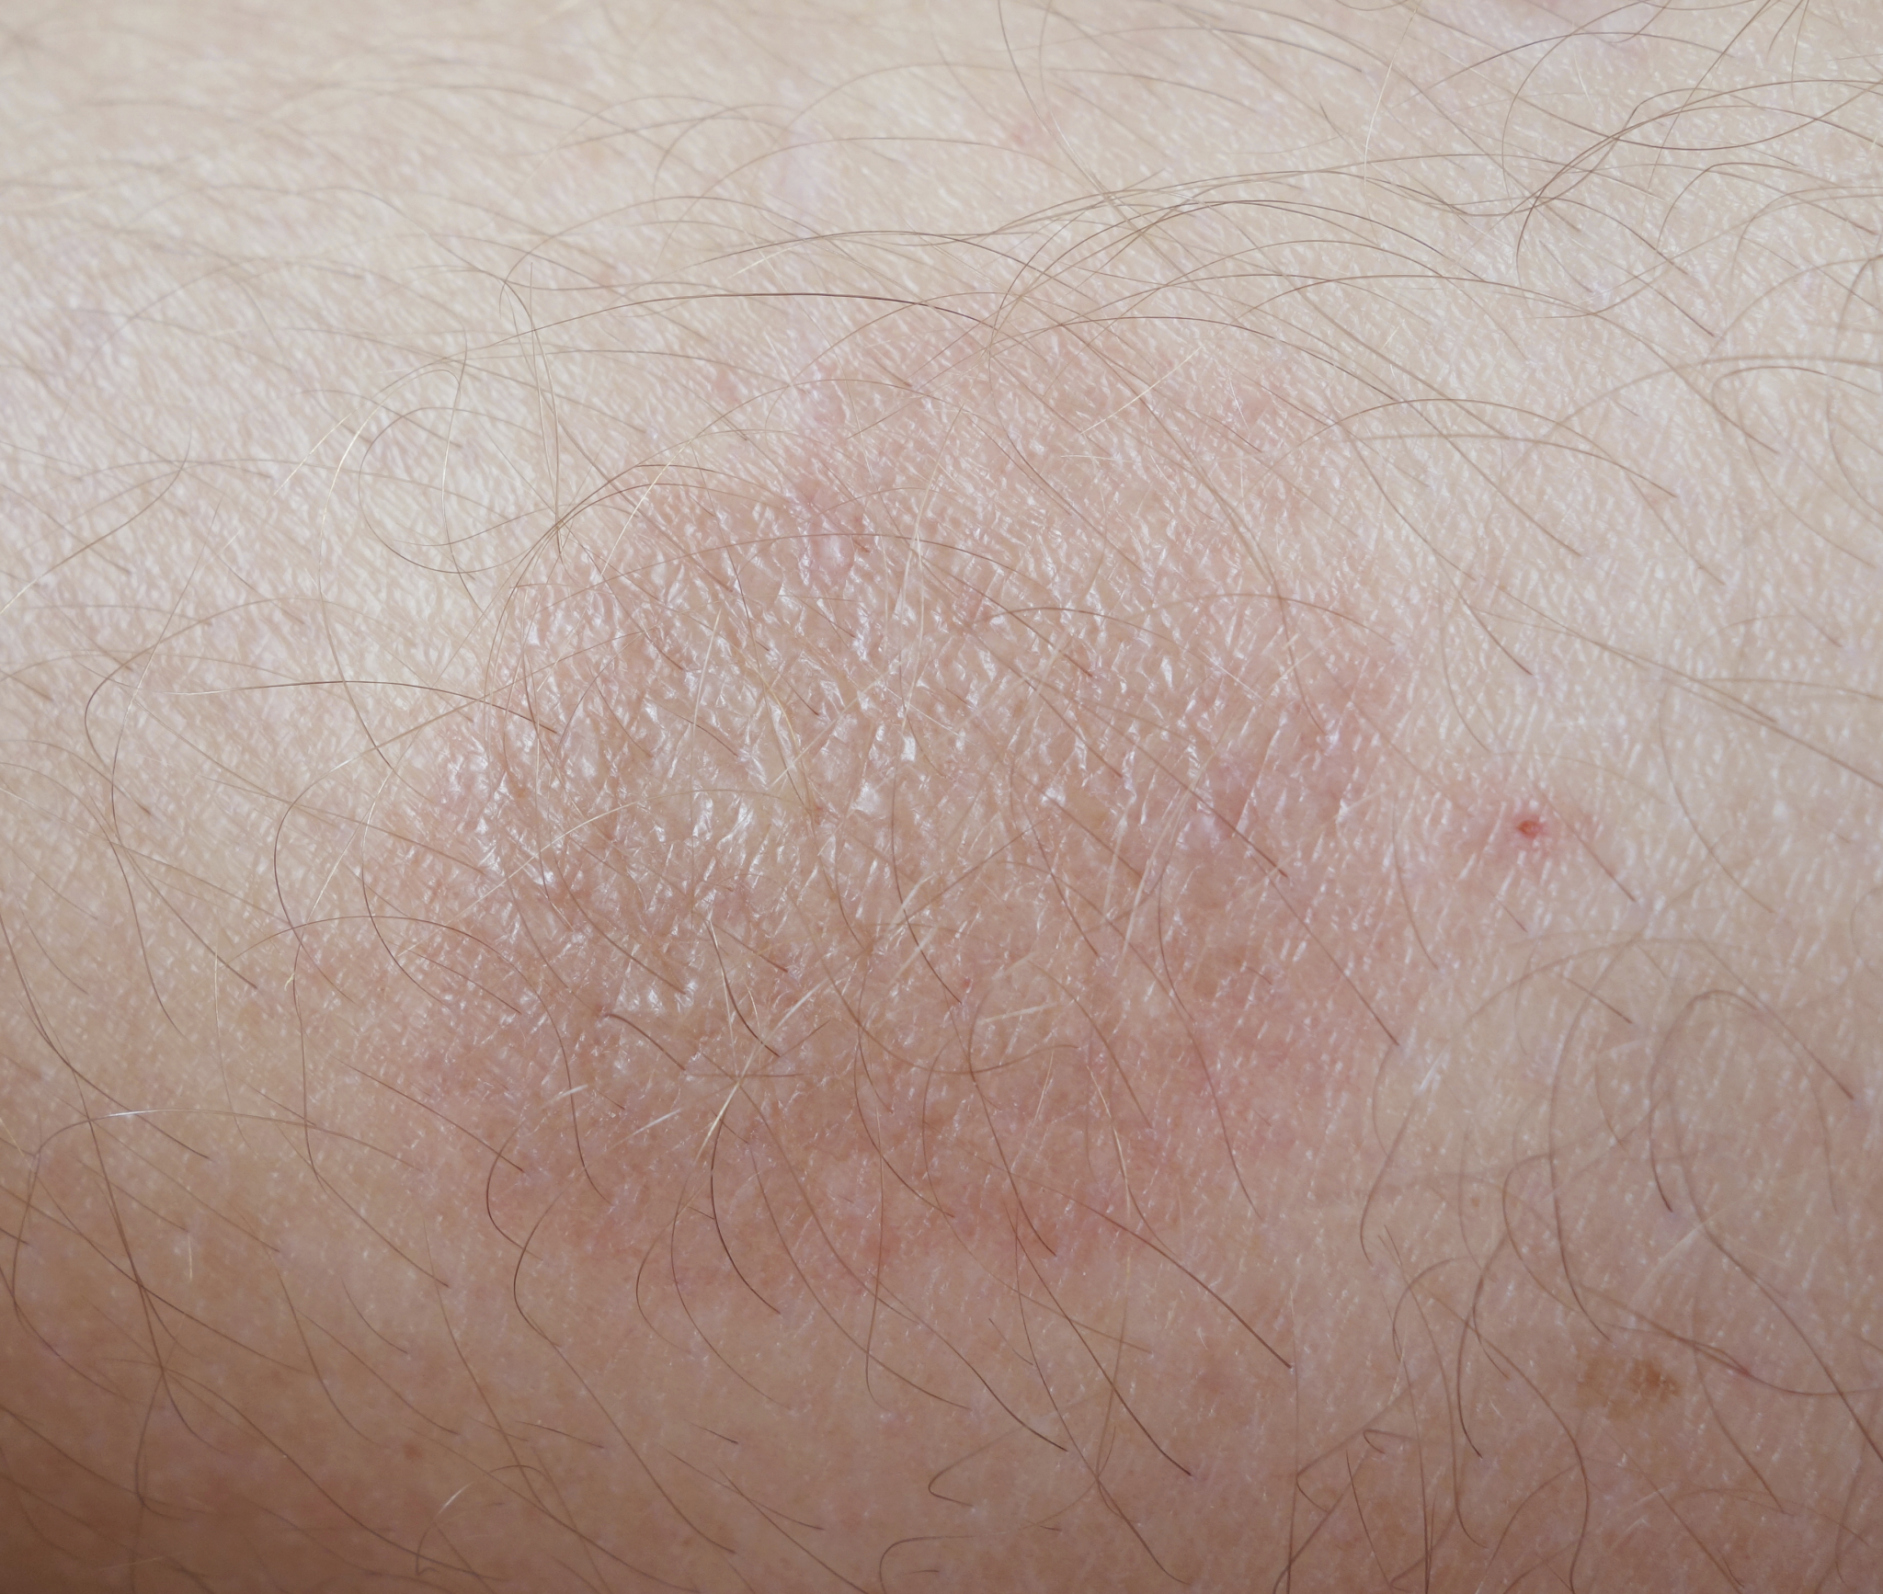 How To Treat Burns From Cream Hair Removers